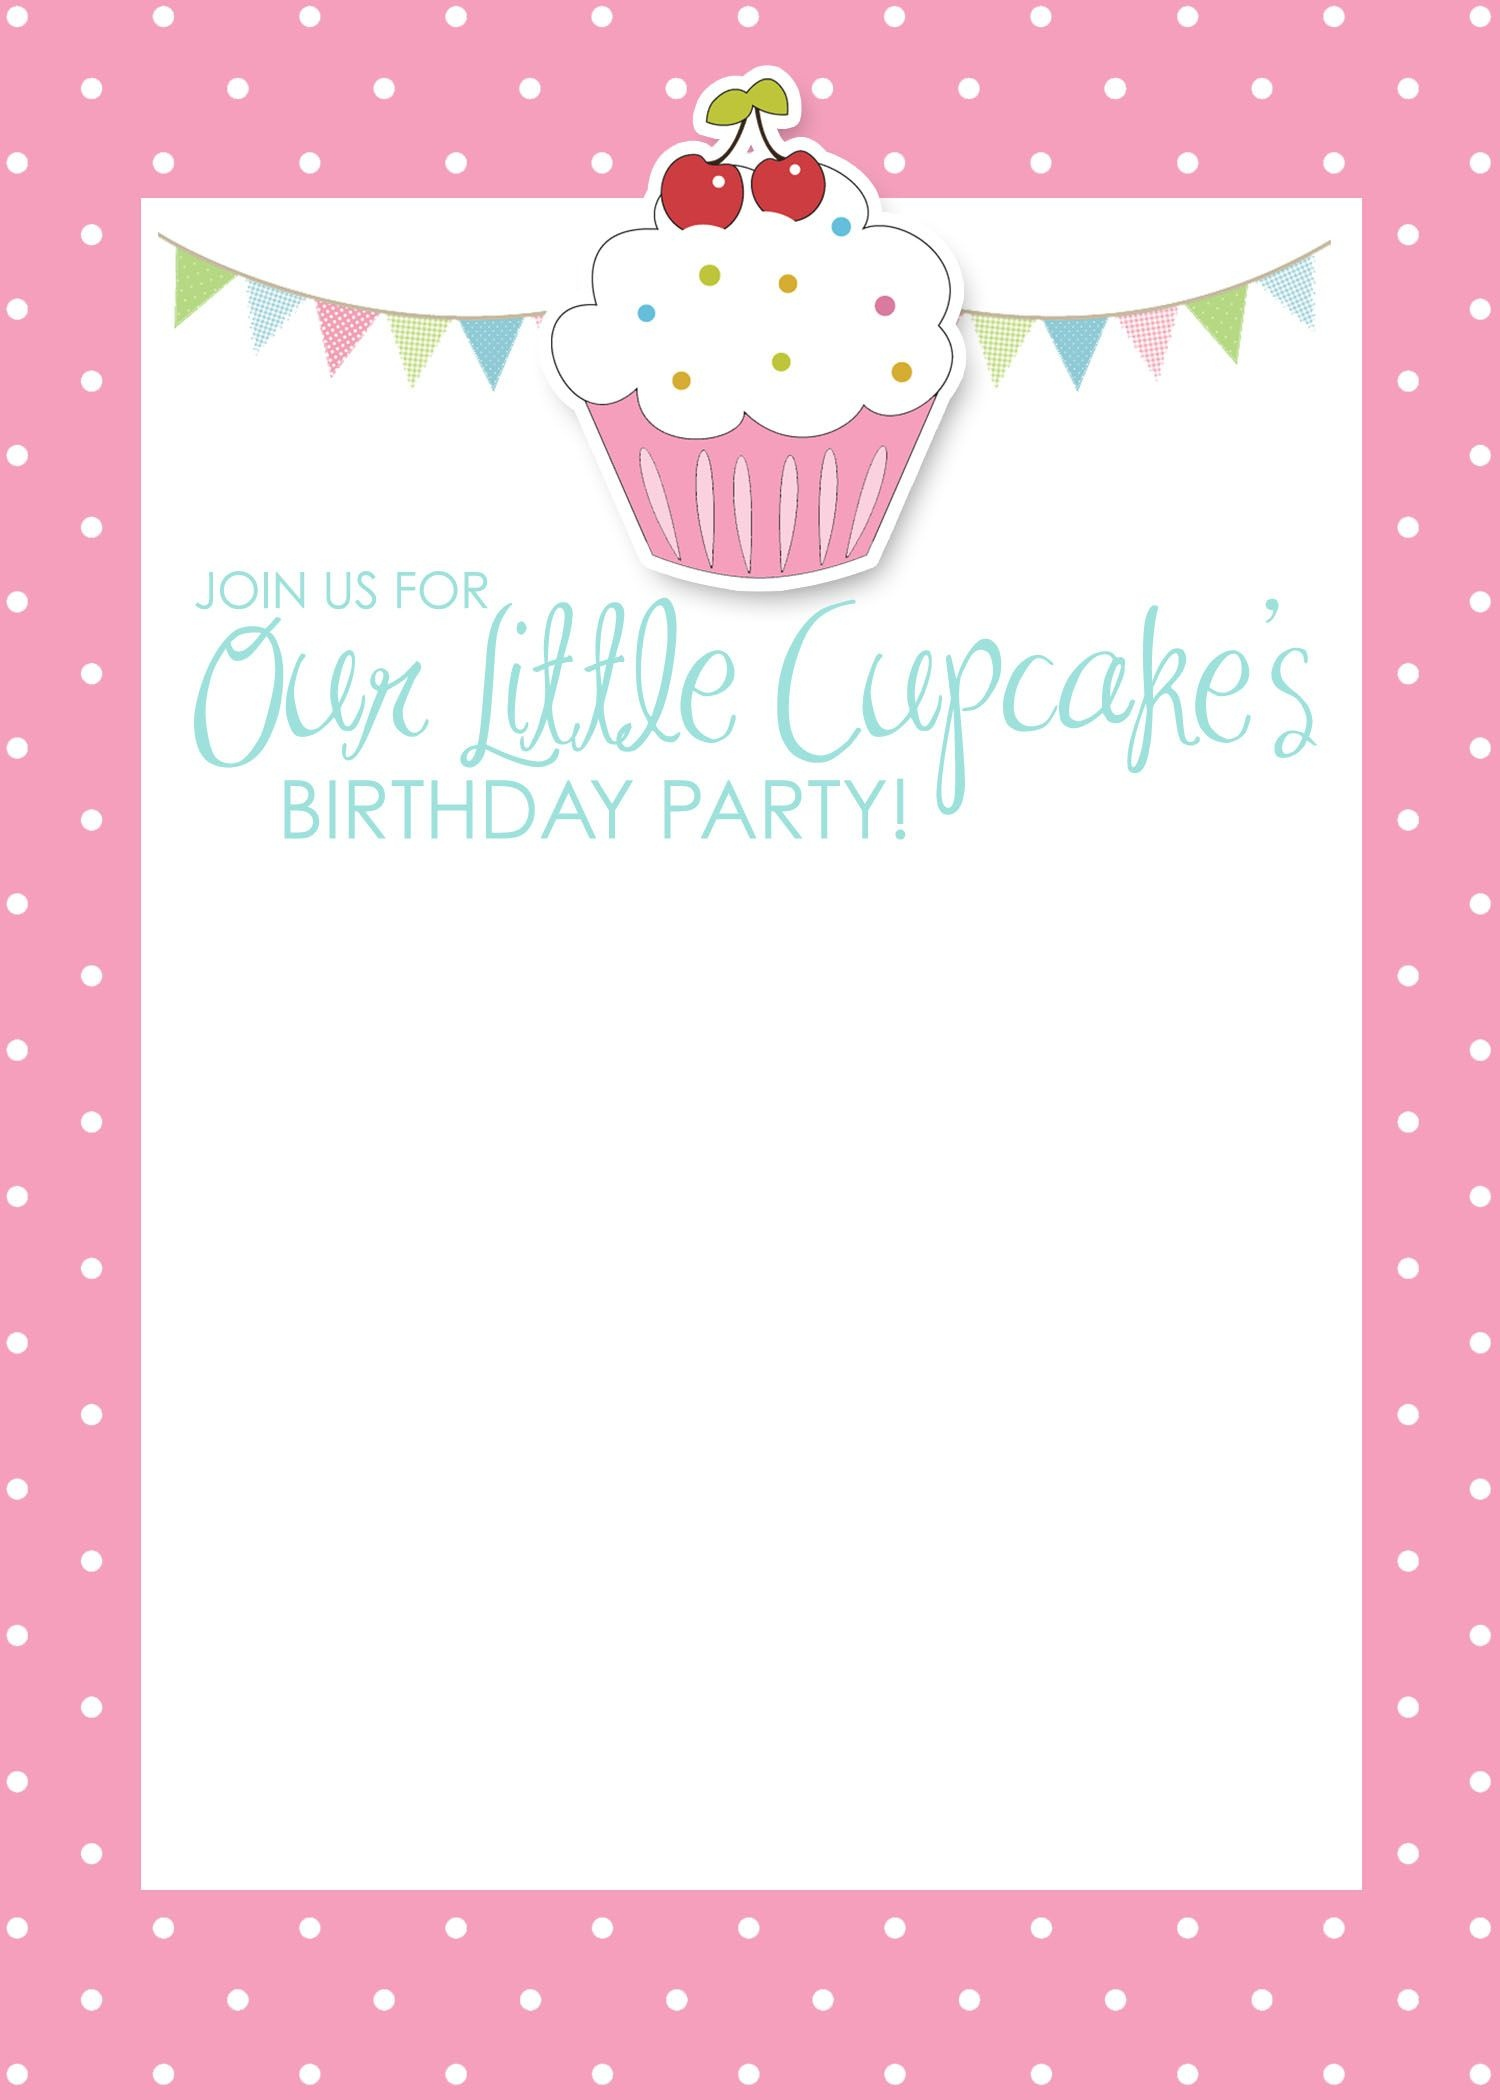 Cupcake Birthday Party With Free Printables   Detalles Fiestas - Free Printable Birthday Invitations Pinterest